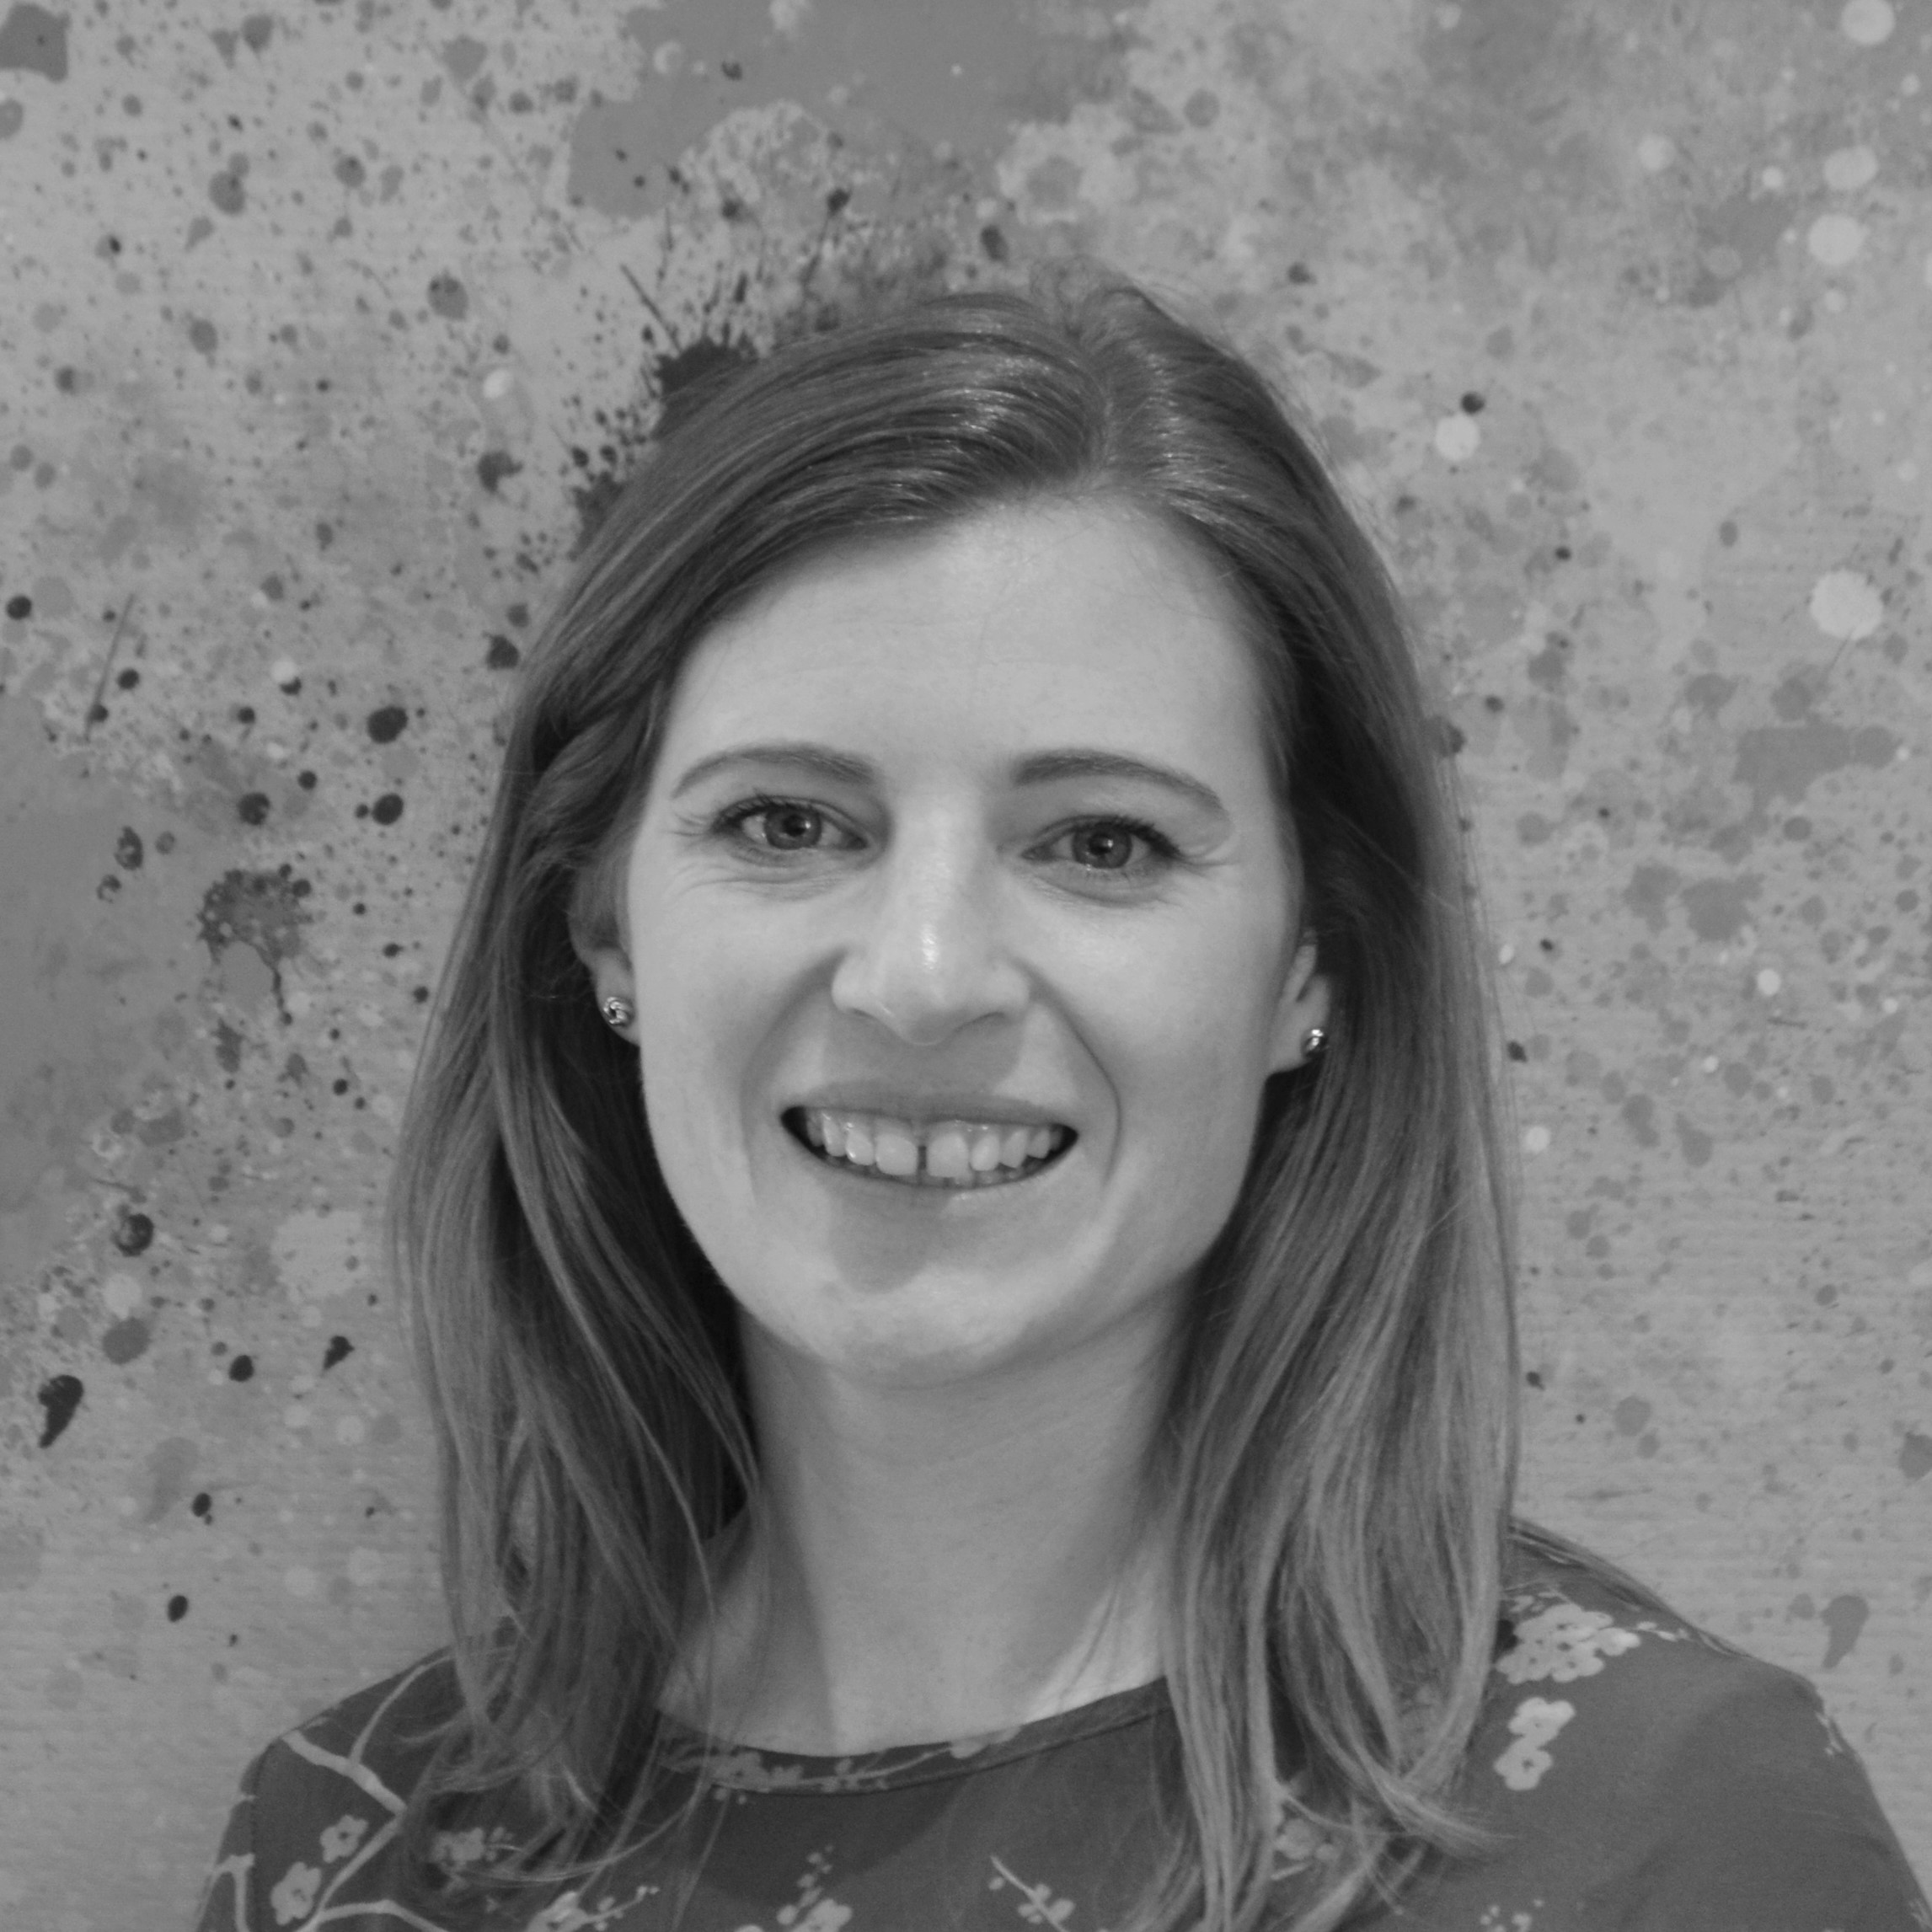 Annabel Wilson started her new role as a Legal Design Engineer in May 2019, transferring her world-class litigation skills into creative design-thinking with a focus on creating practical solutions that are easy to implement and foster positive change for everyone.